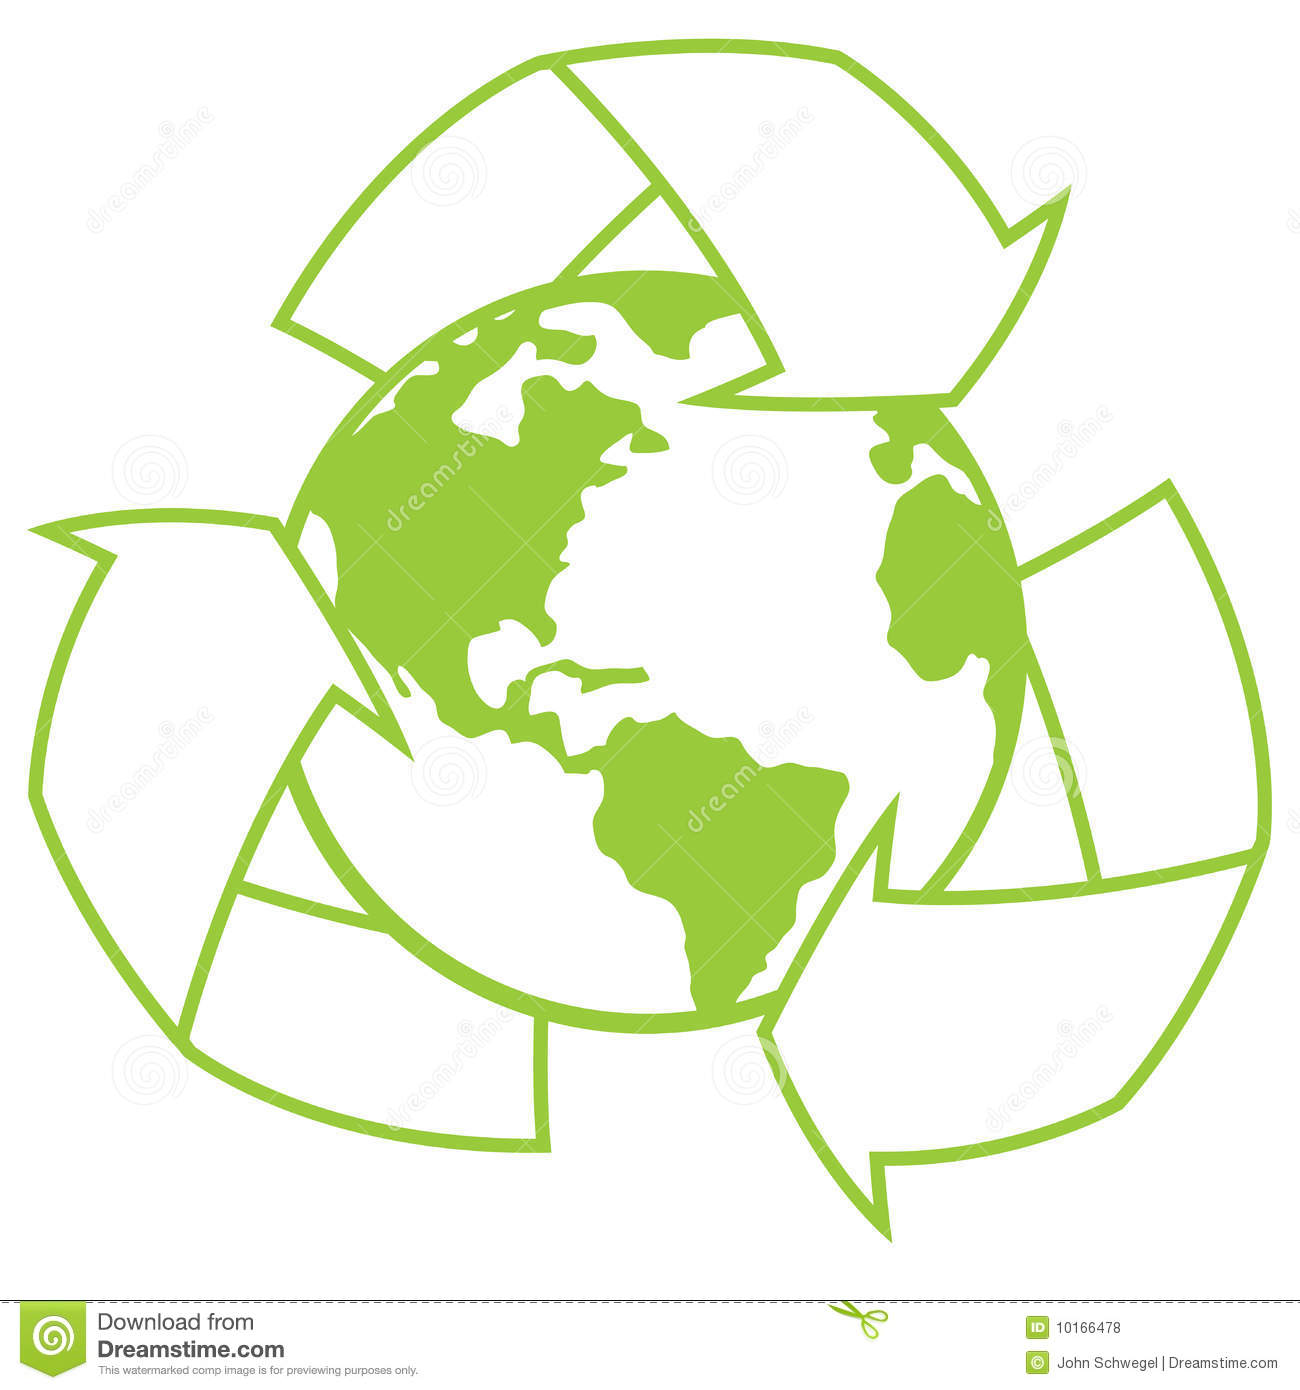 speech recycling and planet earth Planet earth recycling, inc offers waste management and recycling services the company engages in the recycling of waste materials including scrap tires, glass, plastic, paper, cardboard, metals.